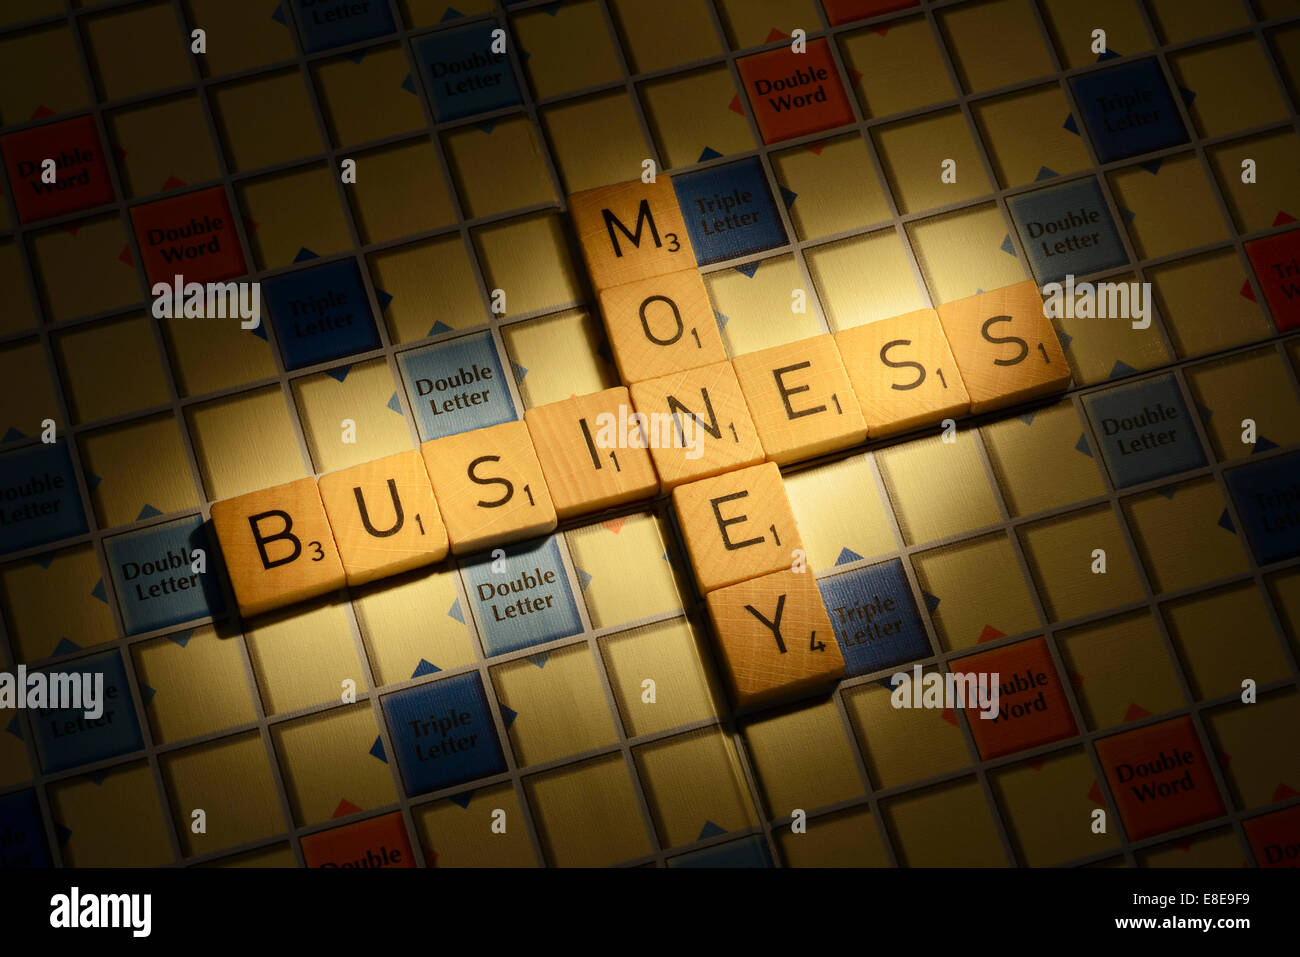 Scrabble Board With Words Stock Photos Scrabble Board With Words